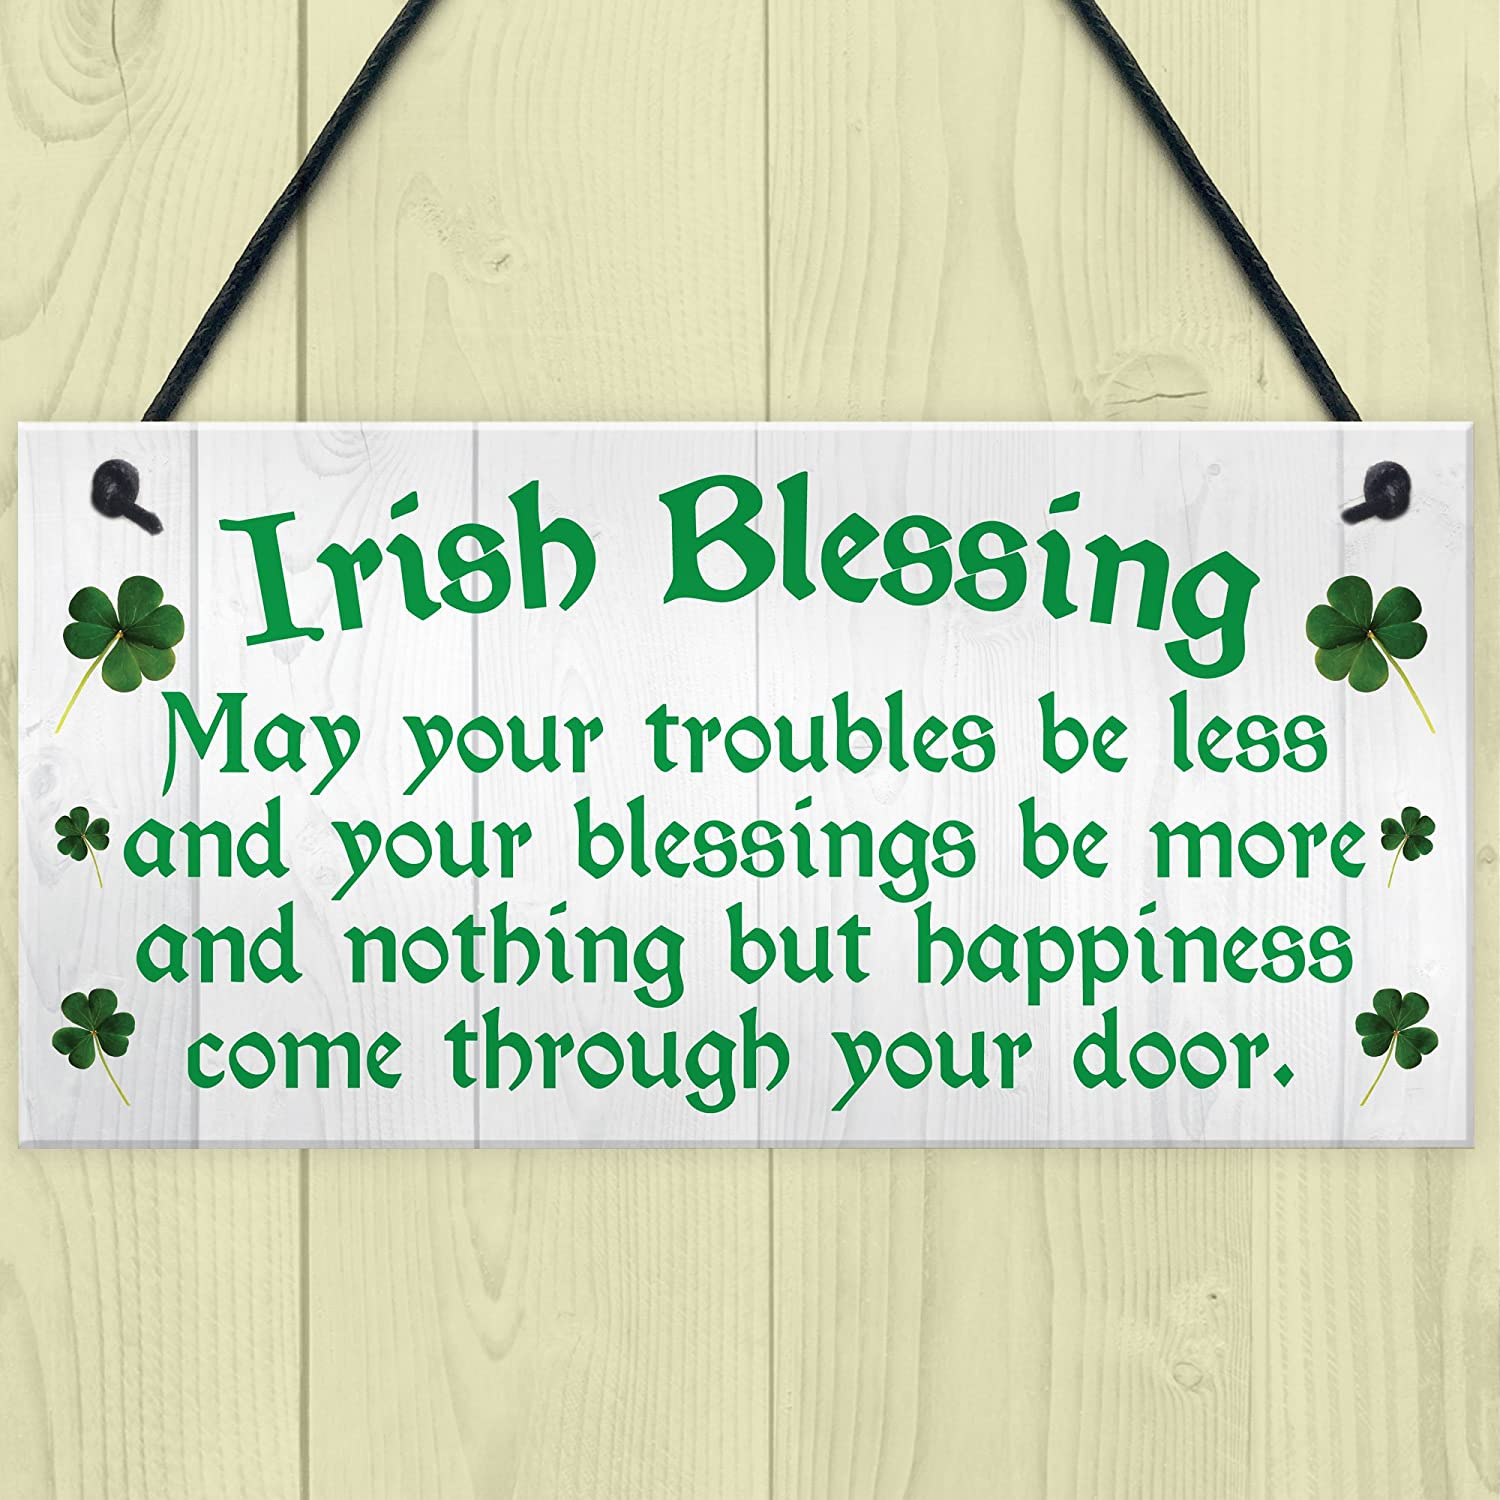 RED OCEAN Irish Blessing Happiness Friendship Gift Plaque St ...